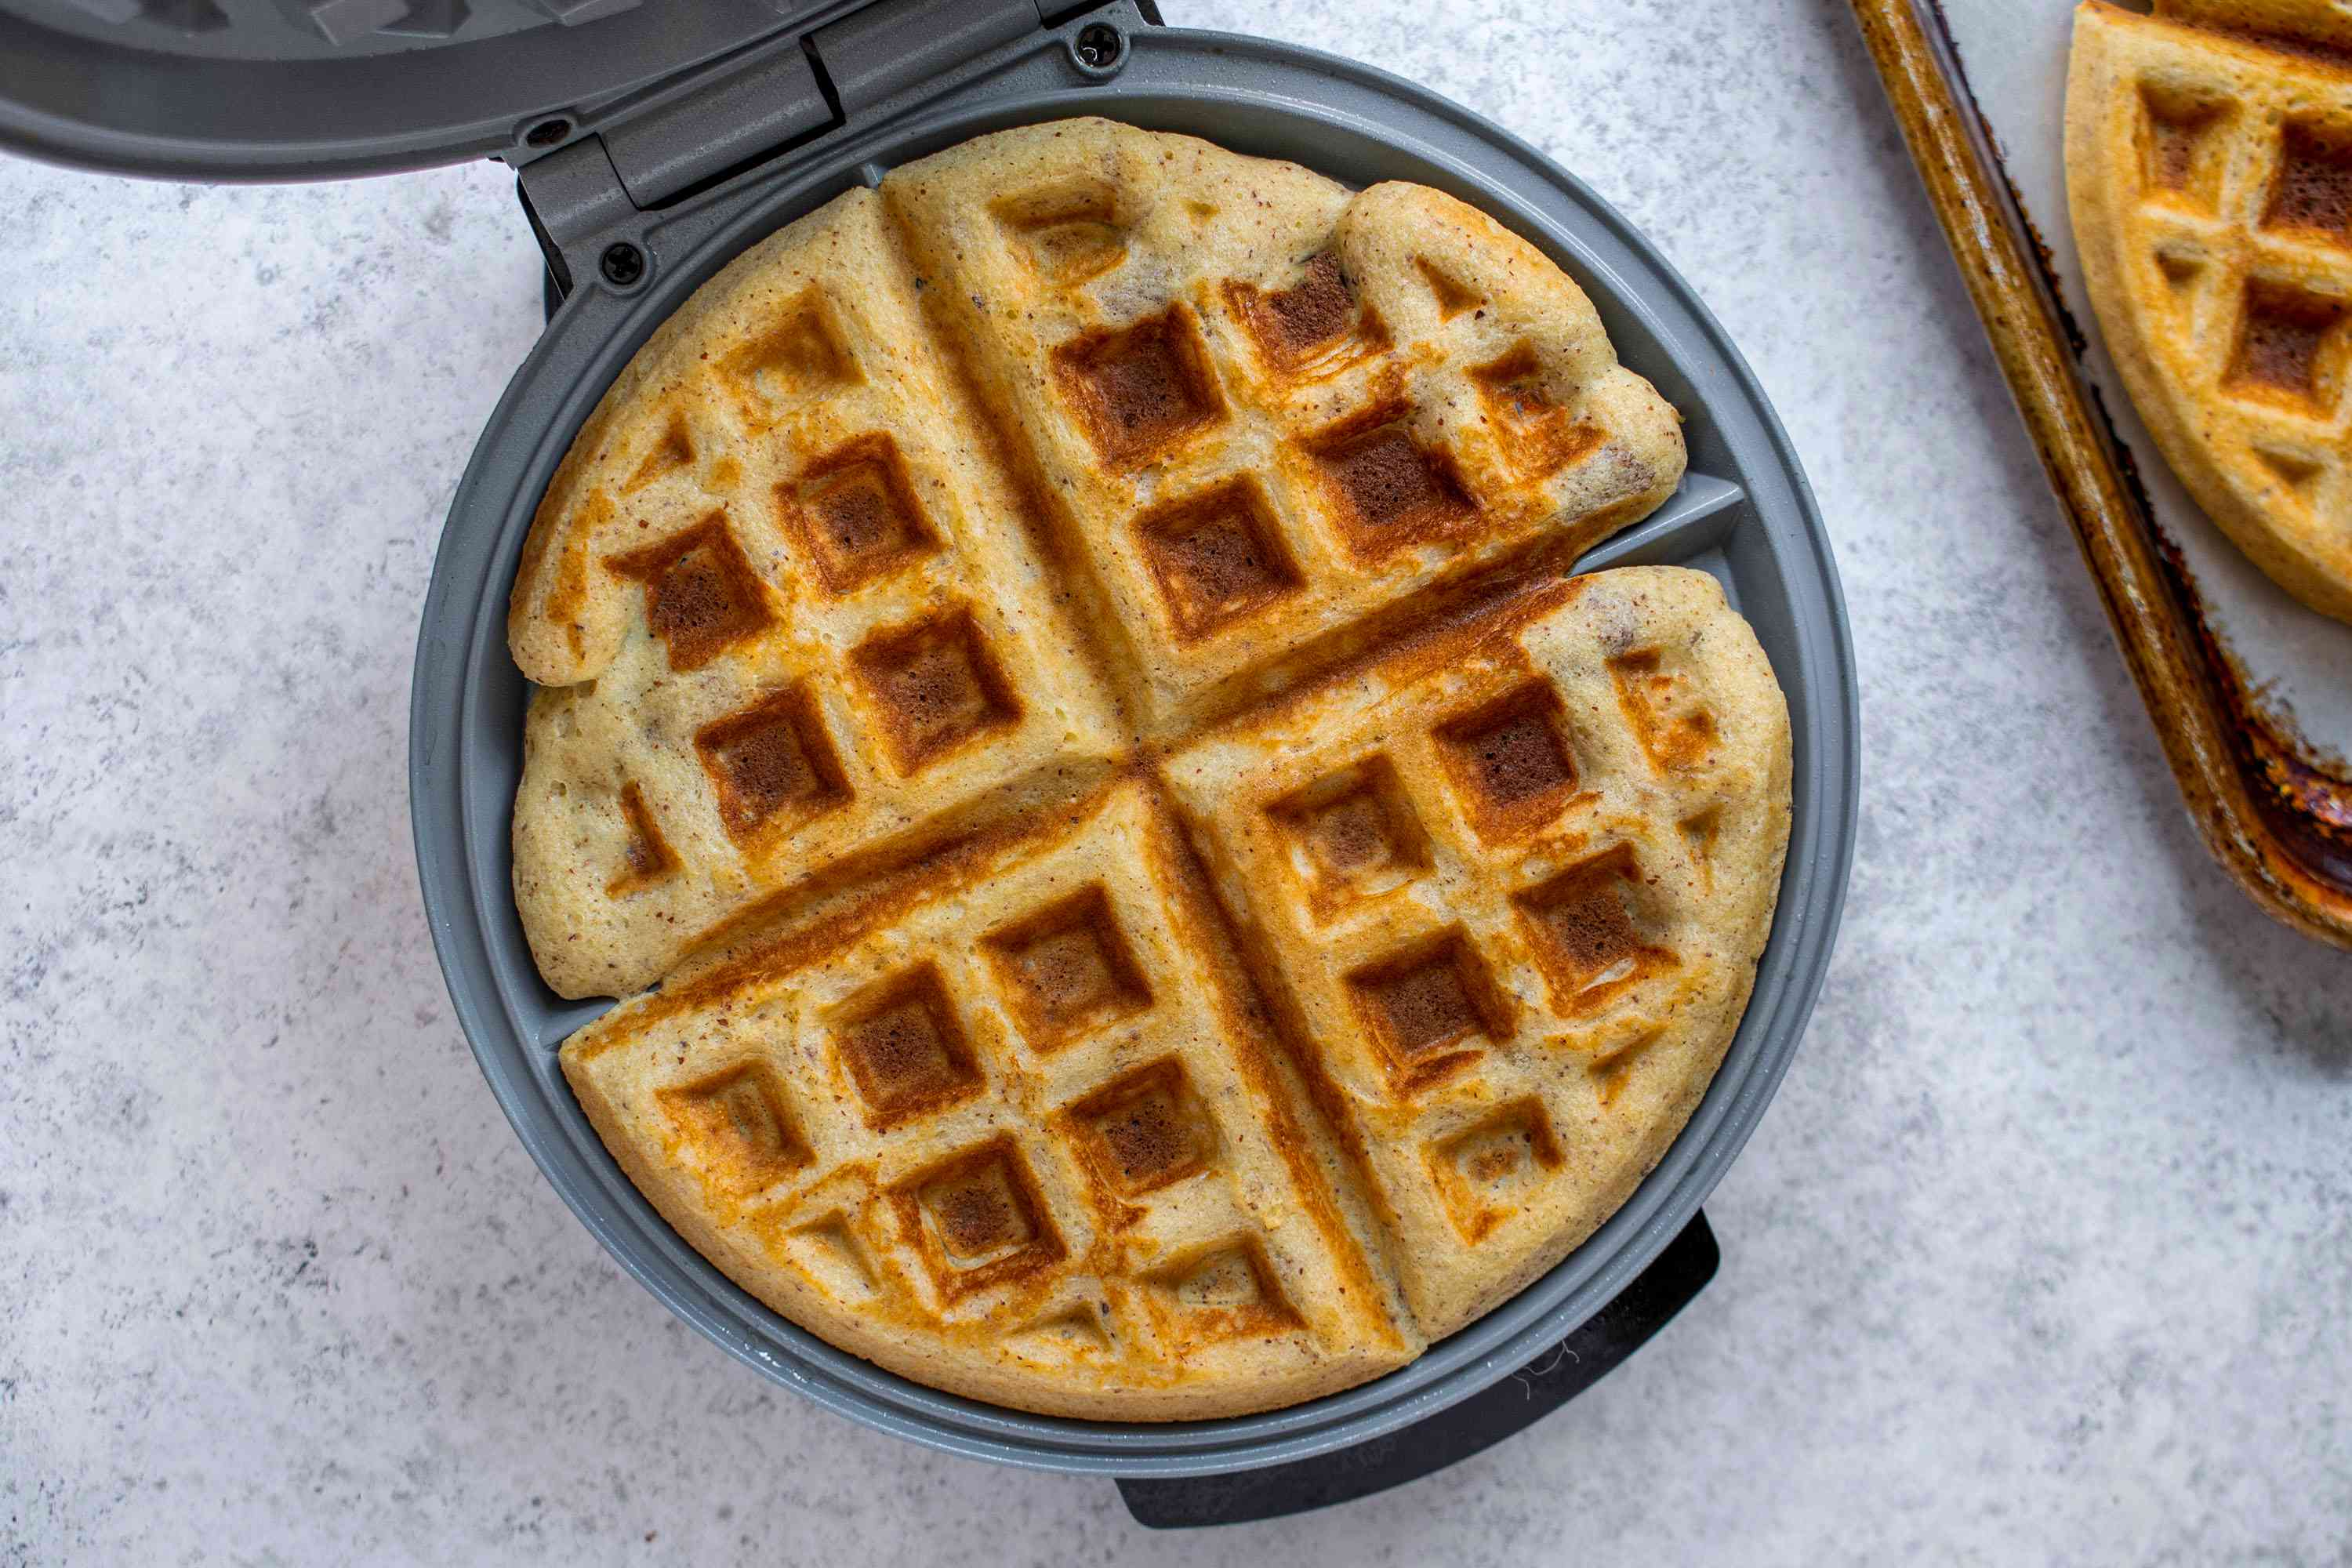 cooked waffle in a waffle iron